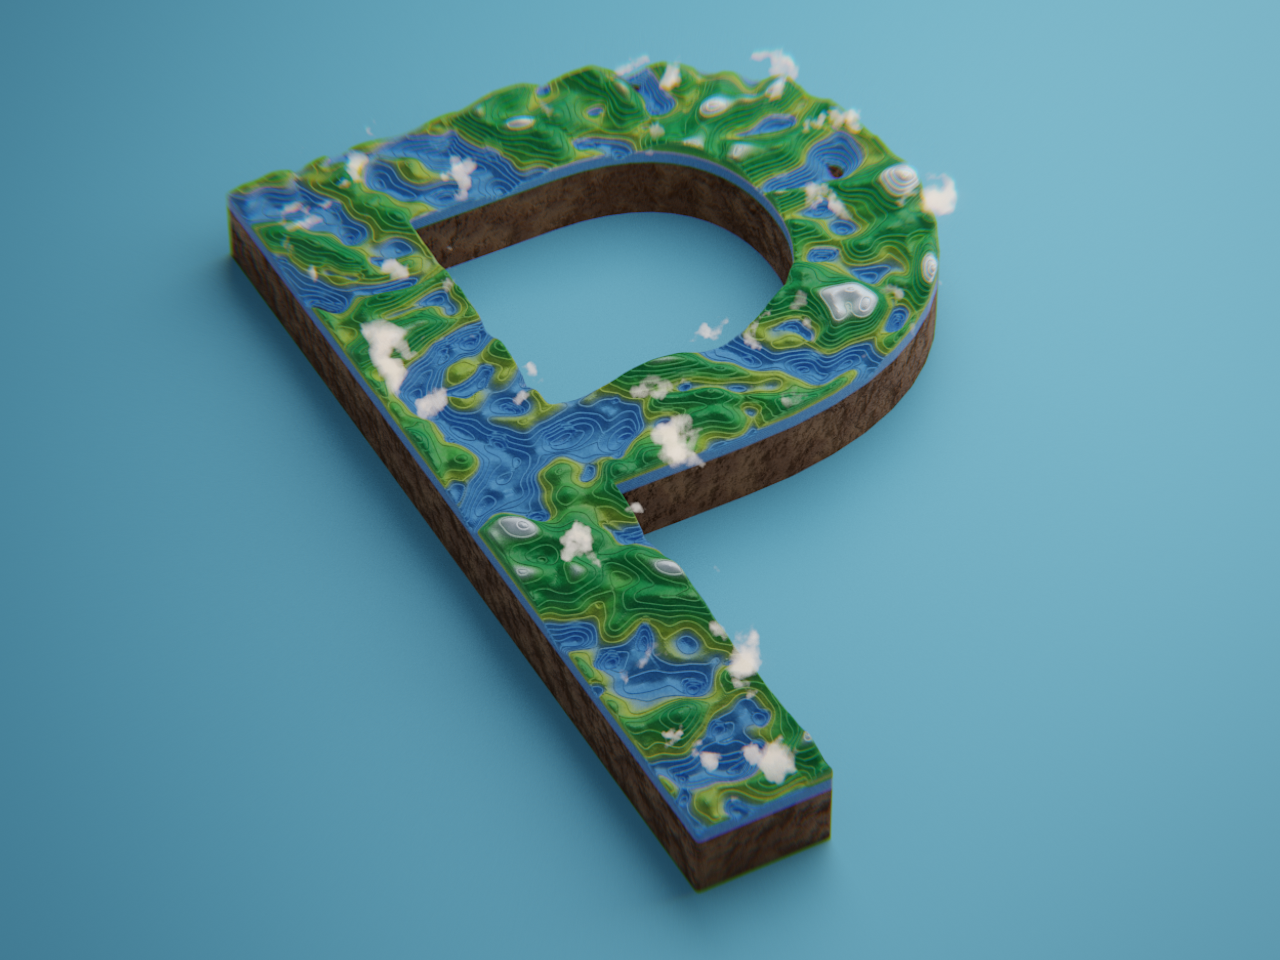 P - 36 Days of Type tiny earth planet abstract design 36 days of type type cycles blender 3d